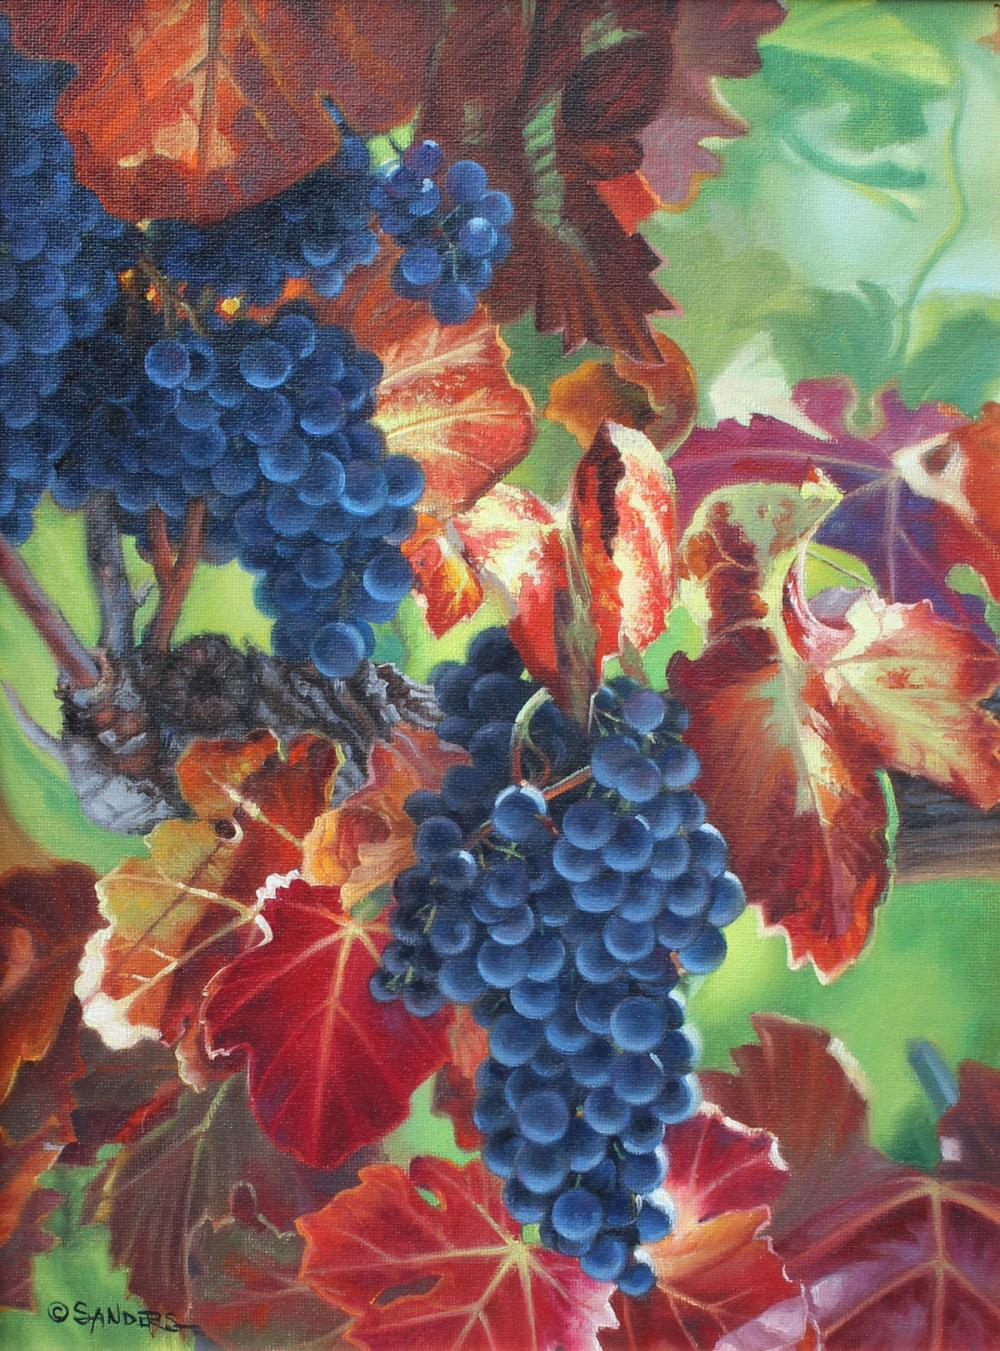 PHOTO REALIST PAINTING OF GRAPES BY RON SANDERS